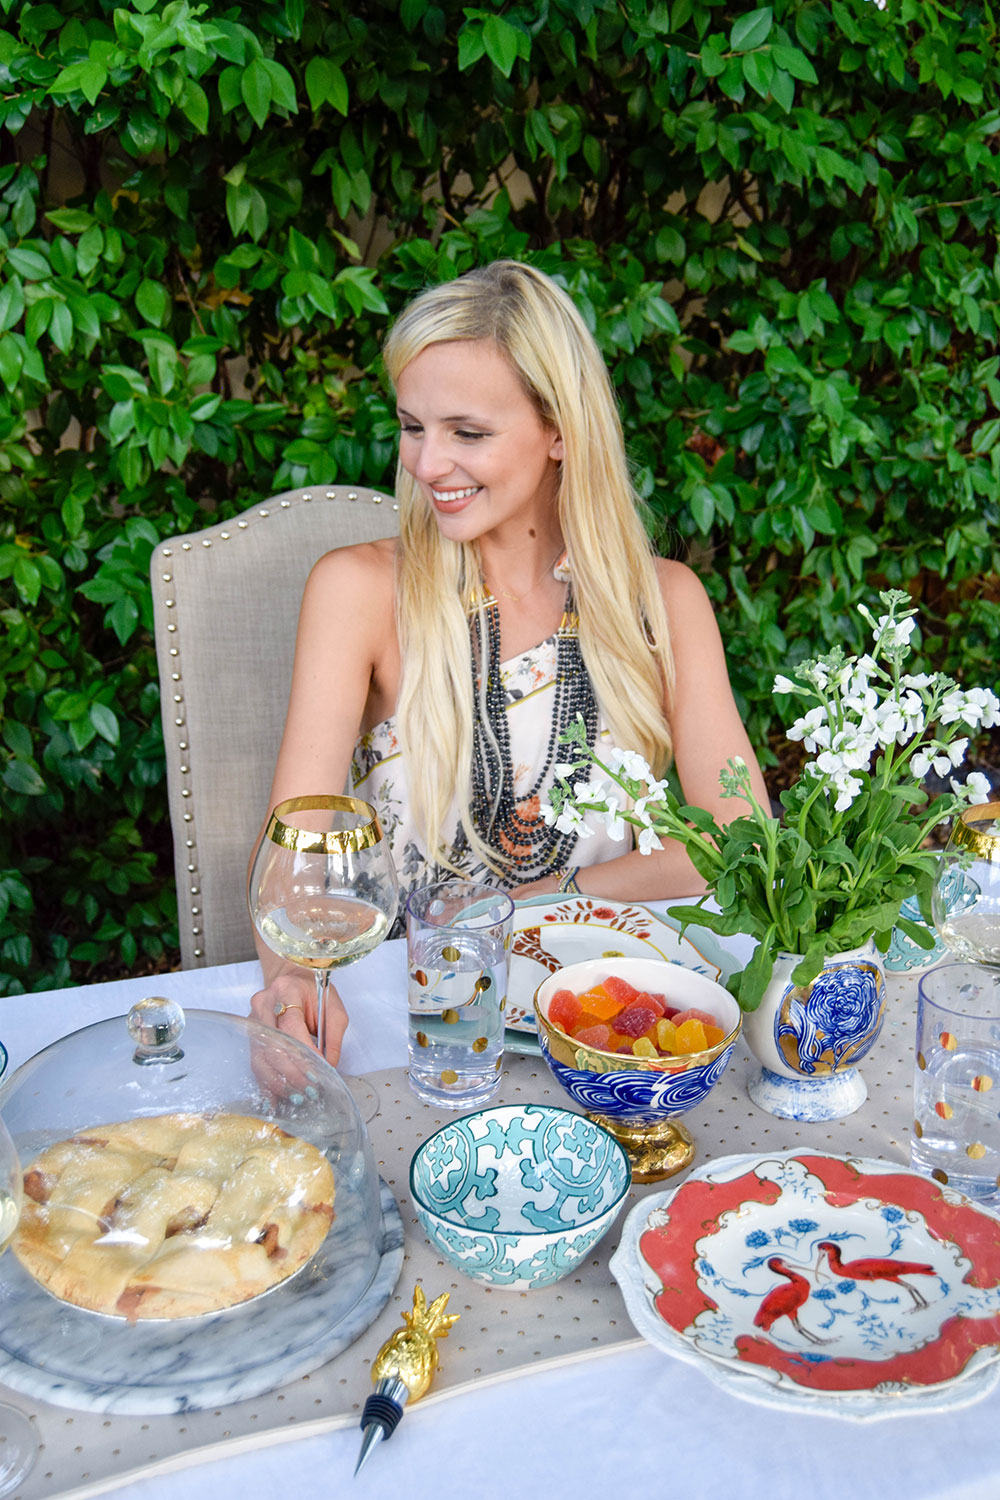 vandi-fair-blog-lauren-vandiver-dallas-texas-southern-fashion-lifestyle-blogger-noonday-collection-jewelry-hosting-a-sweet-weekend-gathering-hostess-outdoor-backyard-party-8